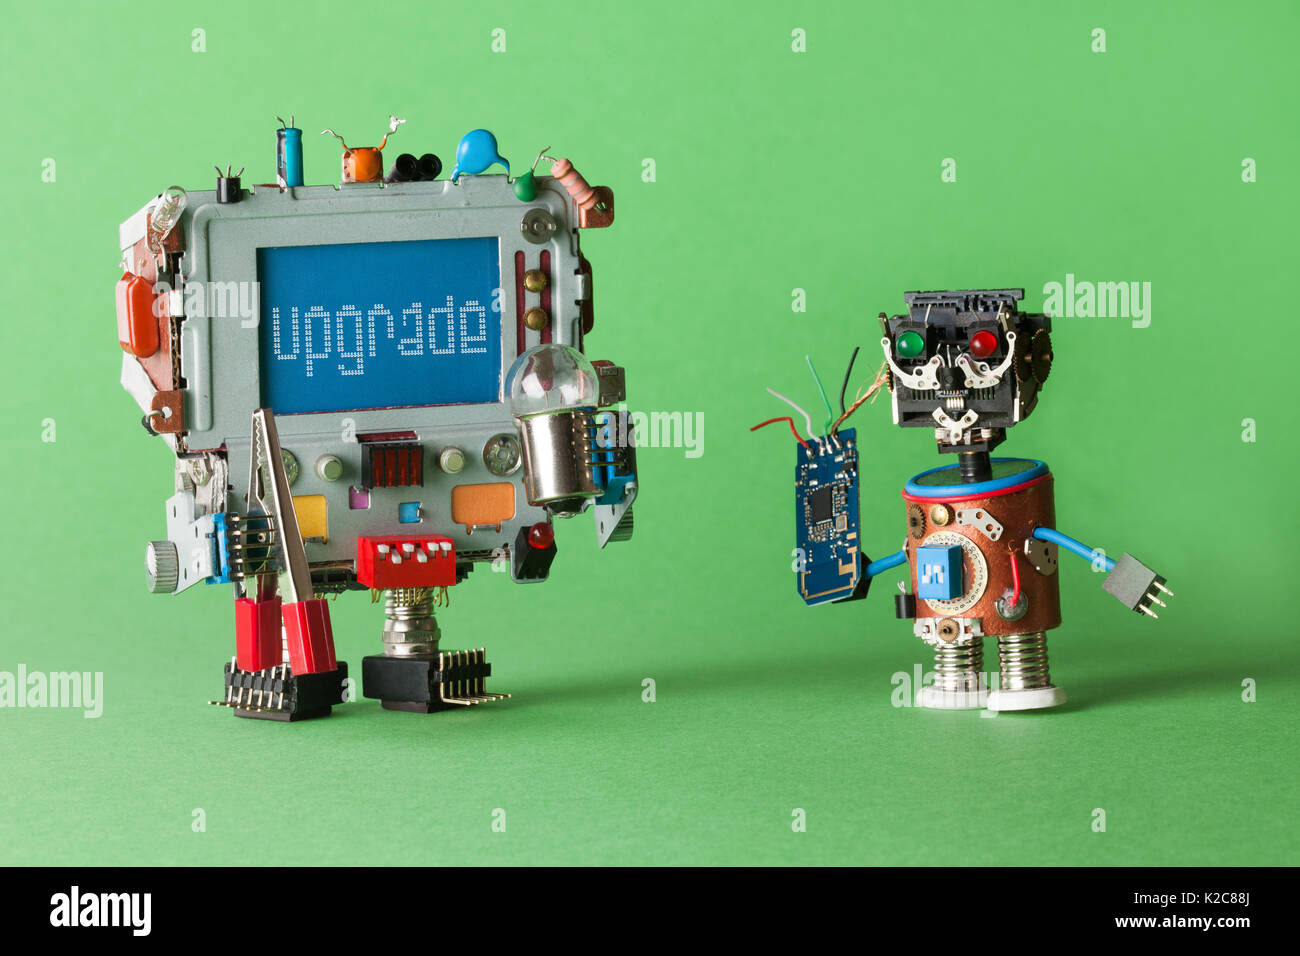 Upgrade computer concept. Handyman technician robot with circuit in hand and monitor robotic character, warning message on blue screen. green background macro - Stock Image